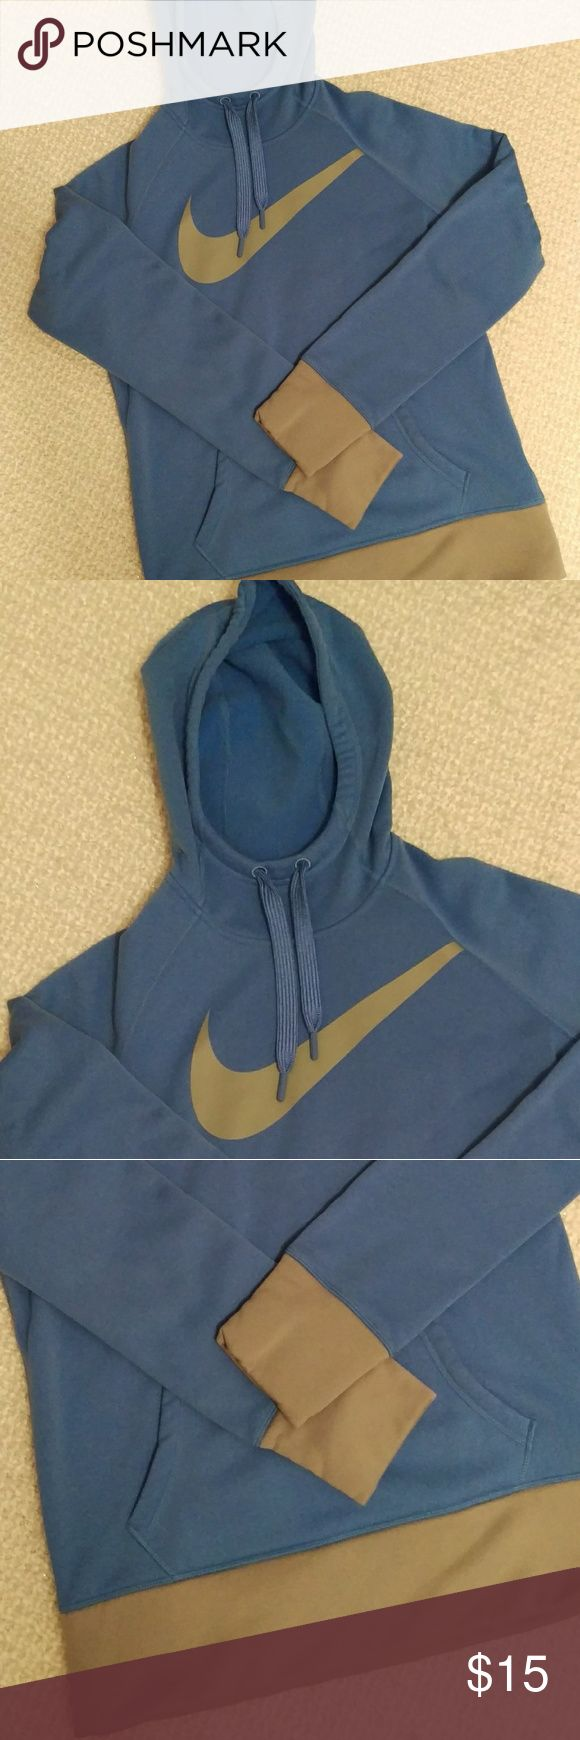 Nike Fleece Hoodie Nike Fleece Hoodie - gently used  Therma-fit fleece lining. Light blue, grey trim. Attached hood with drawstring and kangaroo pocket. Little thumb slits on sleeves to tuck in your hand. Slim fit. Gently used, no stains or damage that I can see. Please ask any questions, priced accordingly. Sold as is. 🎆🎆Bundle this and the other Nike Hoodie for $28! 🎆🎆 Nike Tops Sweatshirts & Hoodies